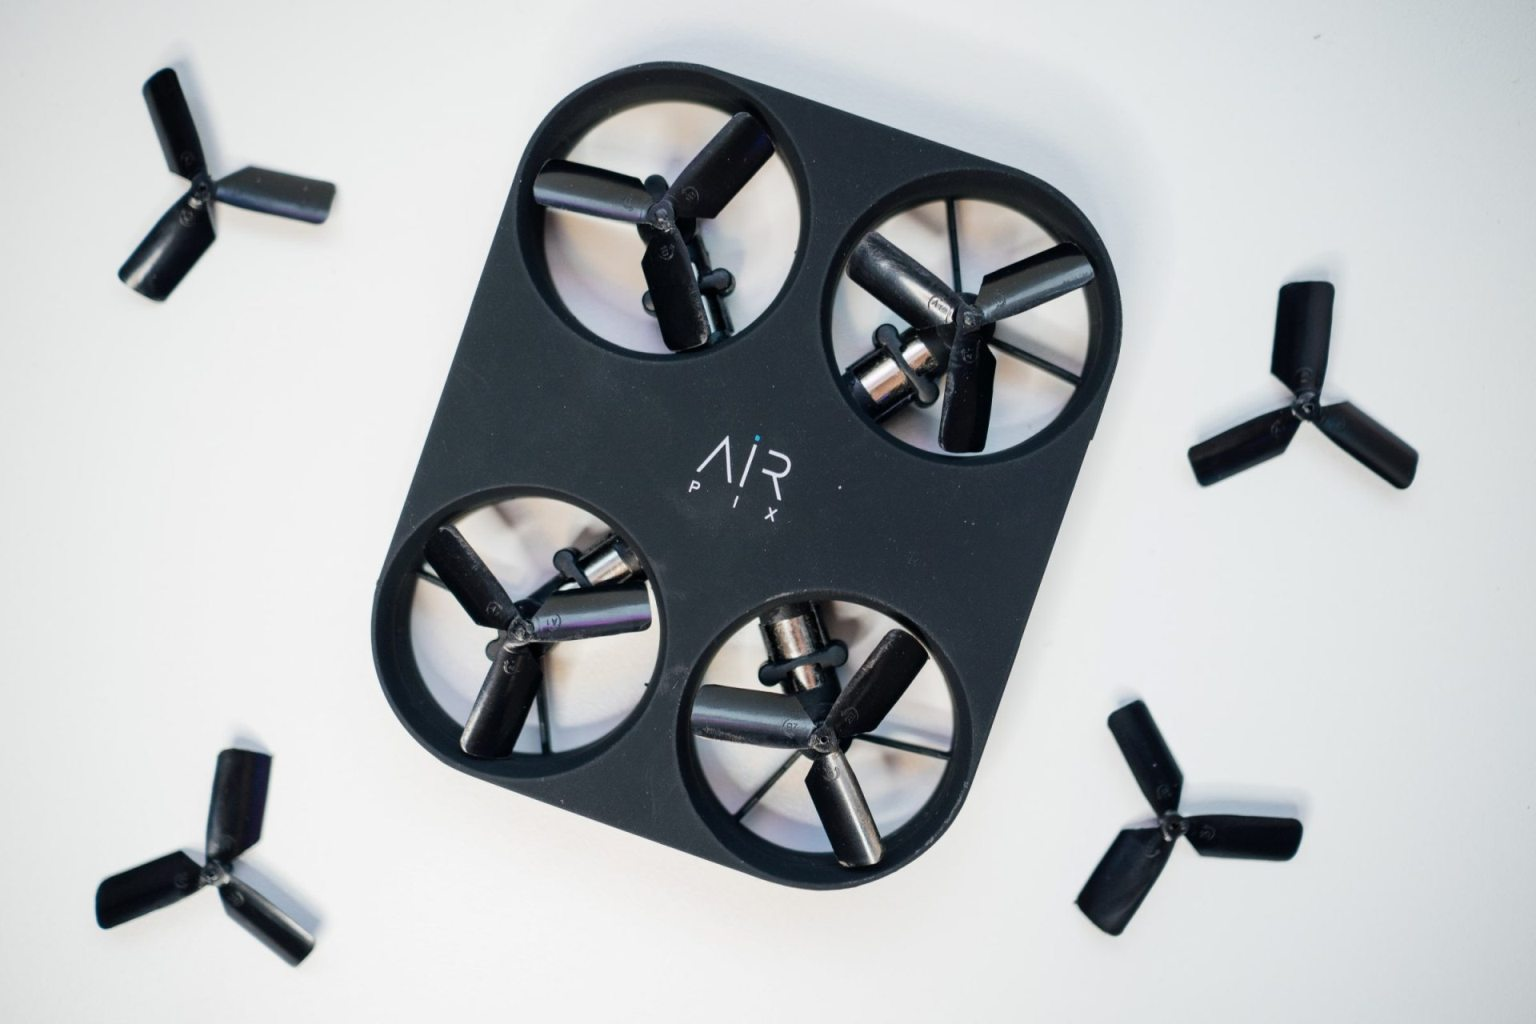 AirPix with propellers